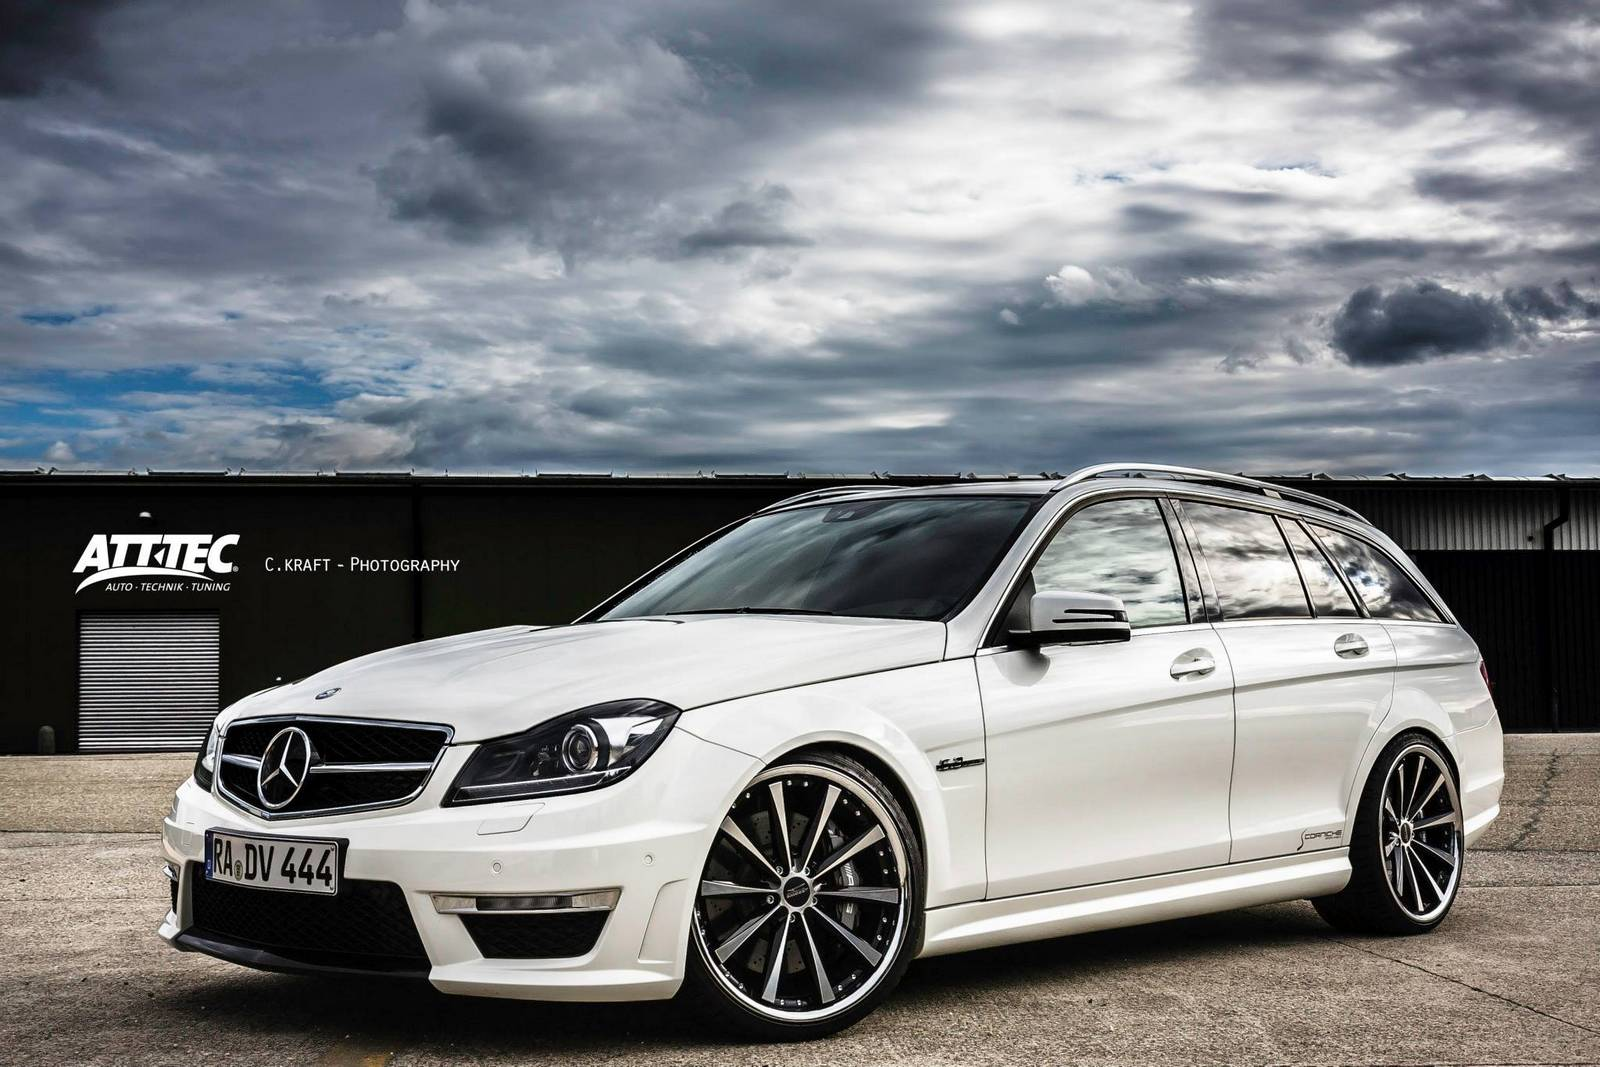 Mercedes benz c 63 amg estate by att tec gmbh gtspirit for Pictures of a mercedes benz